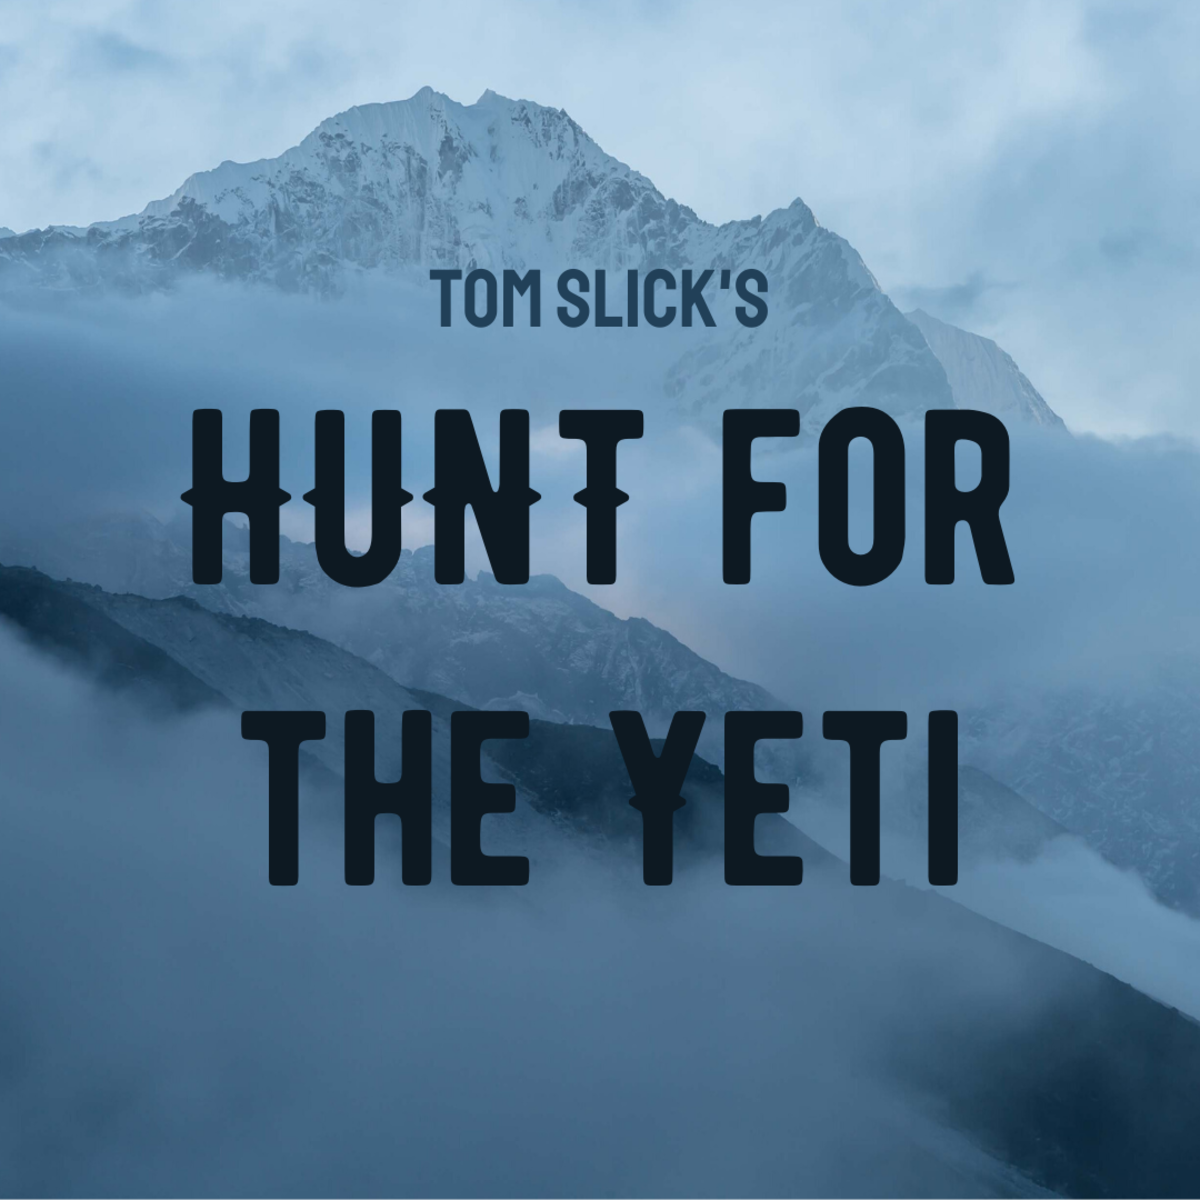 Learn about millionaire Tom Slick's search for undiscovered species, especially the legendary Yeti.